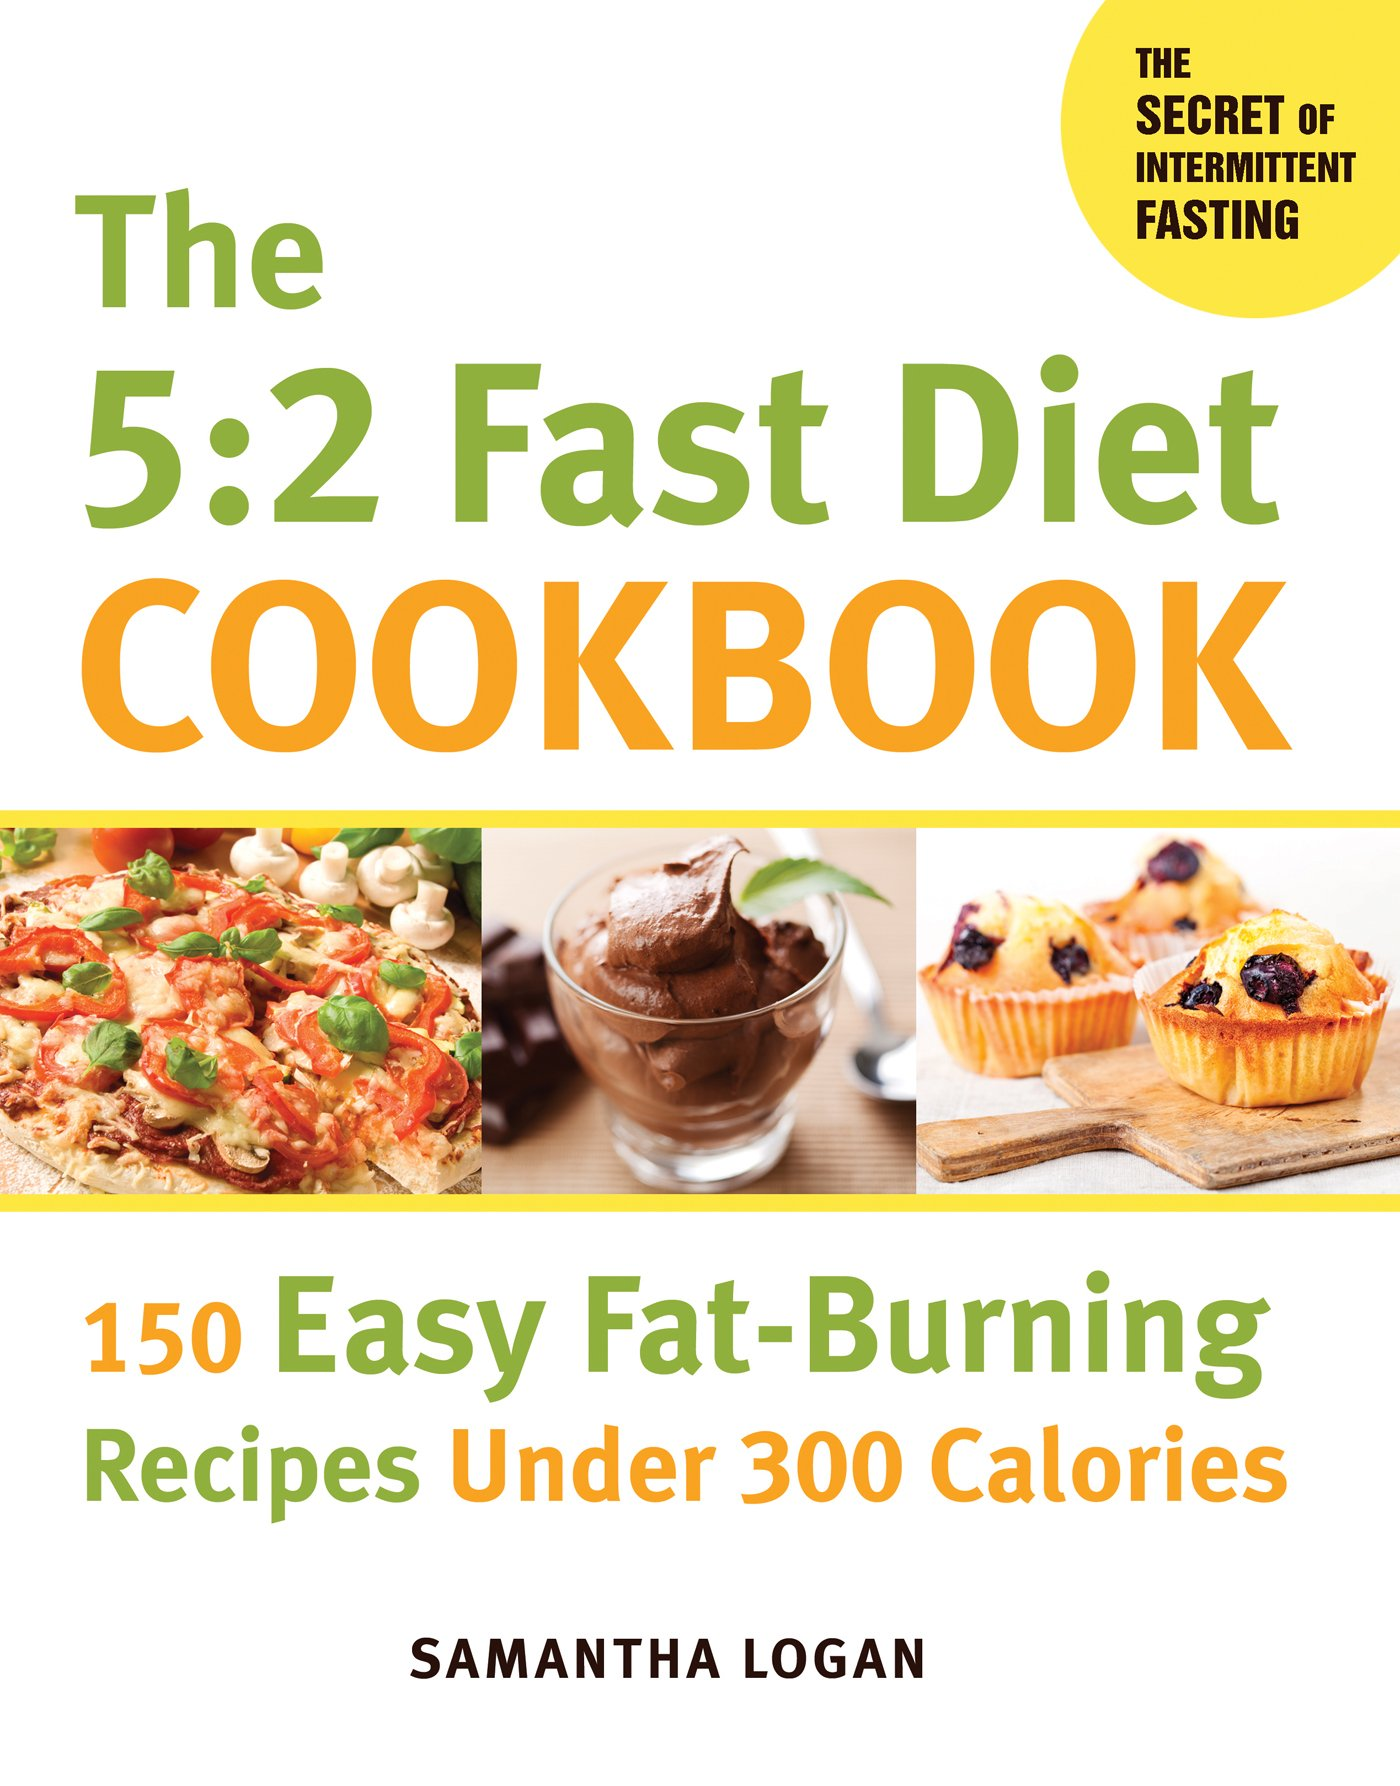 Download The 5:2 Fast Diet Cookbook: 150 Easy Fat-Burning Recipes Under 300 Calories PDF